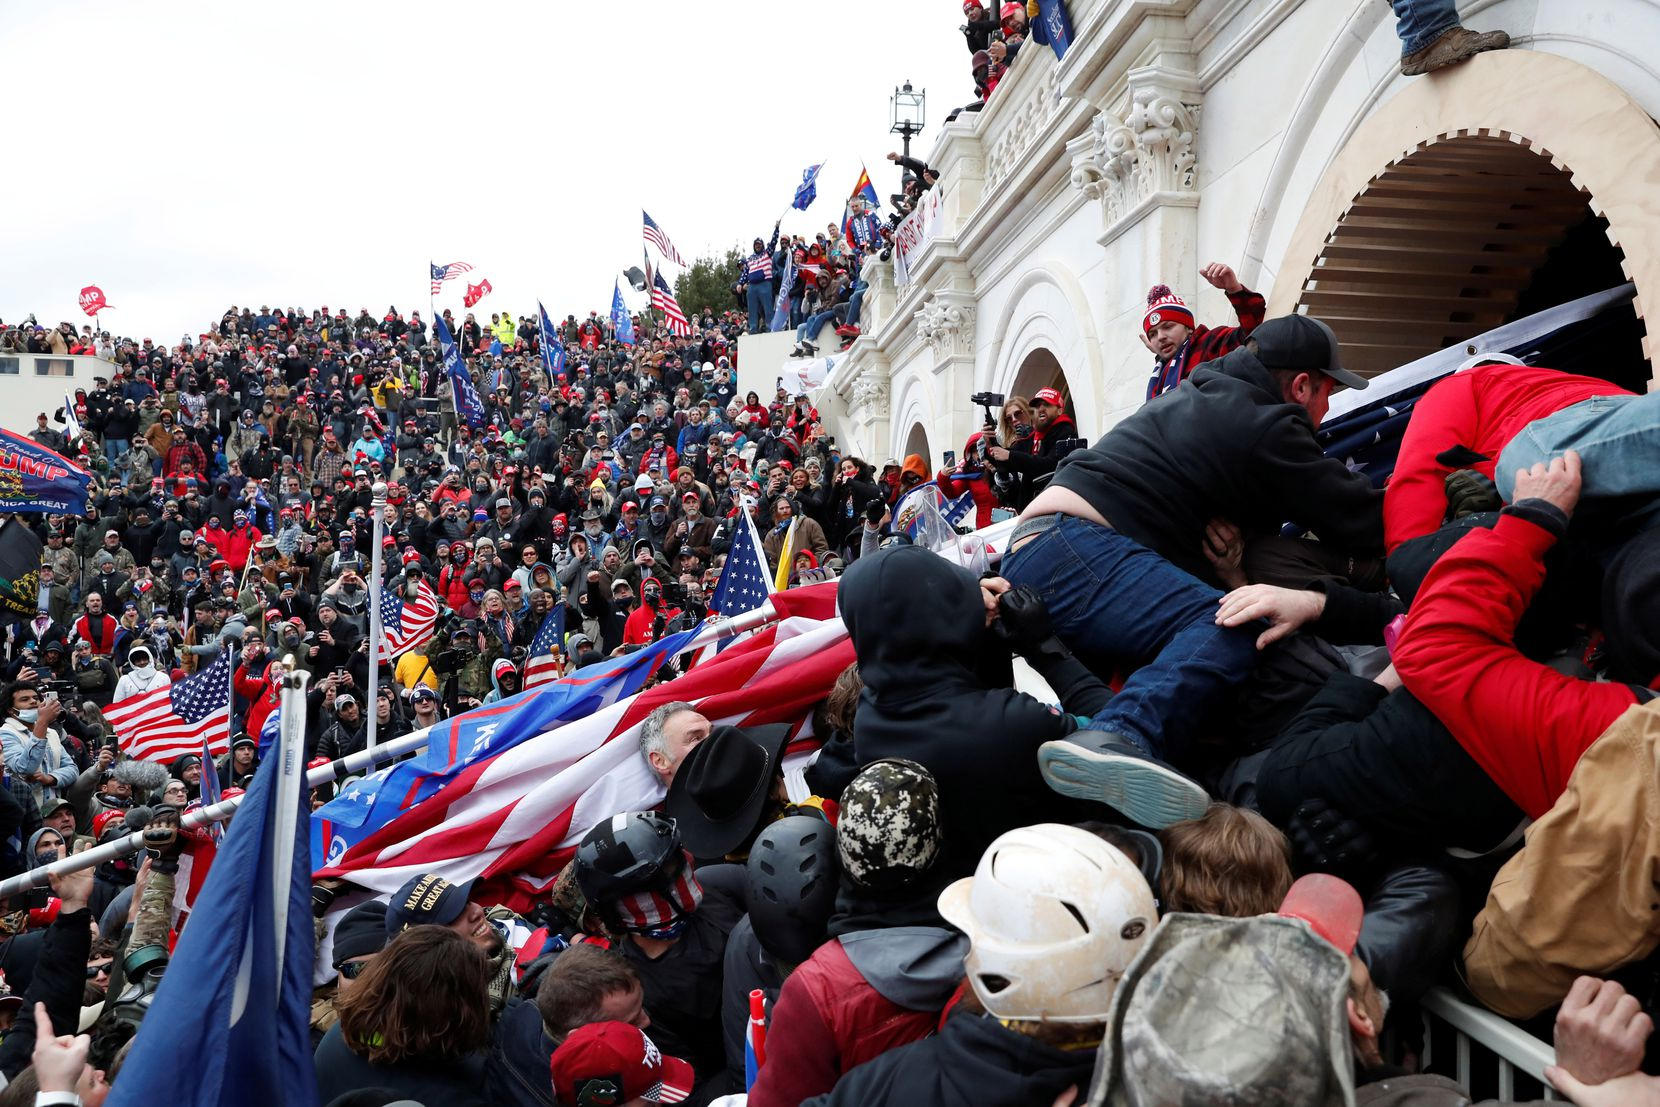 Pro-Trump protesters storm into the U.S. Capitol during clashes with police, during a rally to contest the certification of the 2020 U.S. presidential election results by the U.S. Congress, in Washington, U.S, January 6, 2021. REUTERS/Shannon Stapleton - RC2P2L93TPZS